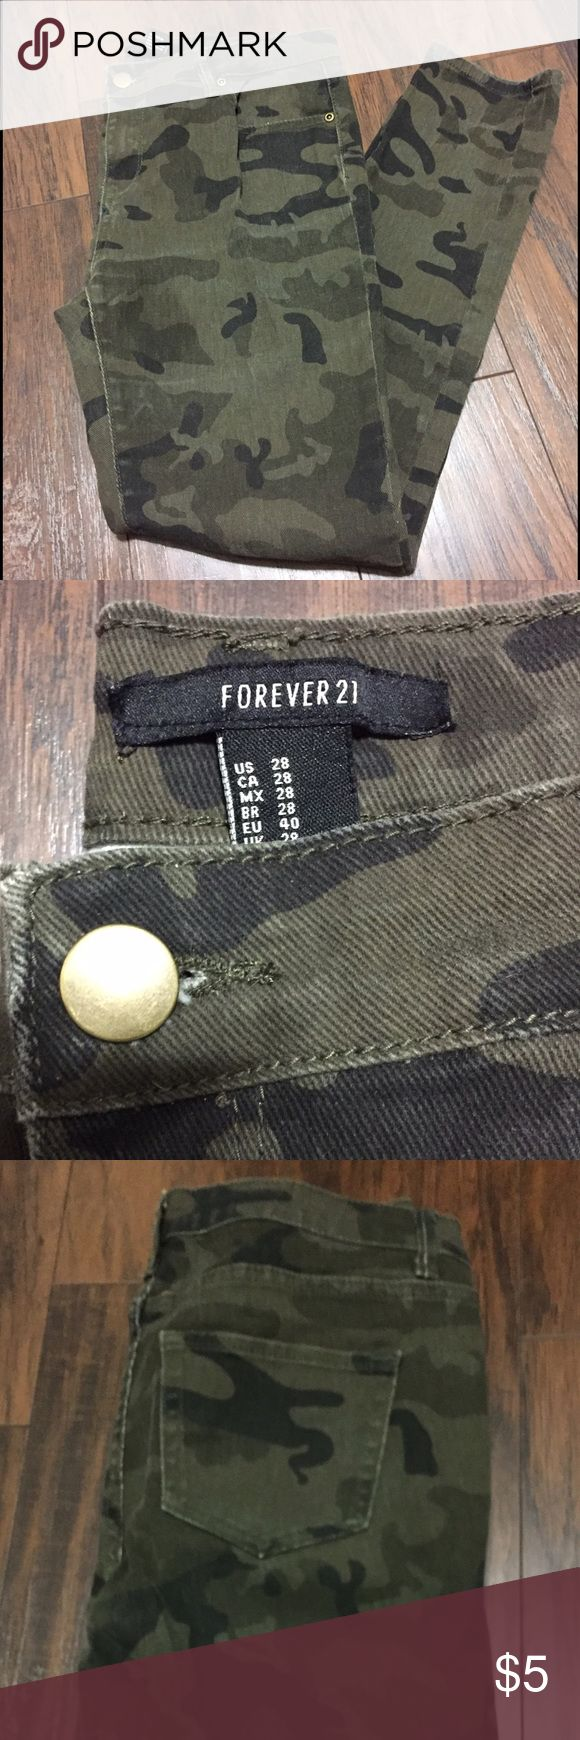 Forever 21 Camouflage Skinny Jeans Used stretch camouflage skinny jeans. Forever 21 Jeans Skinny